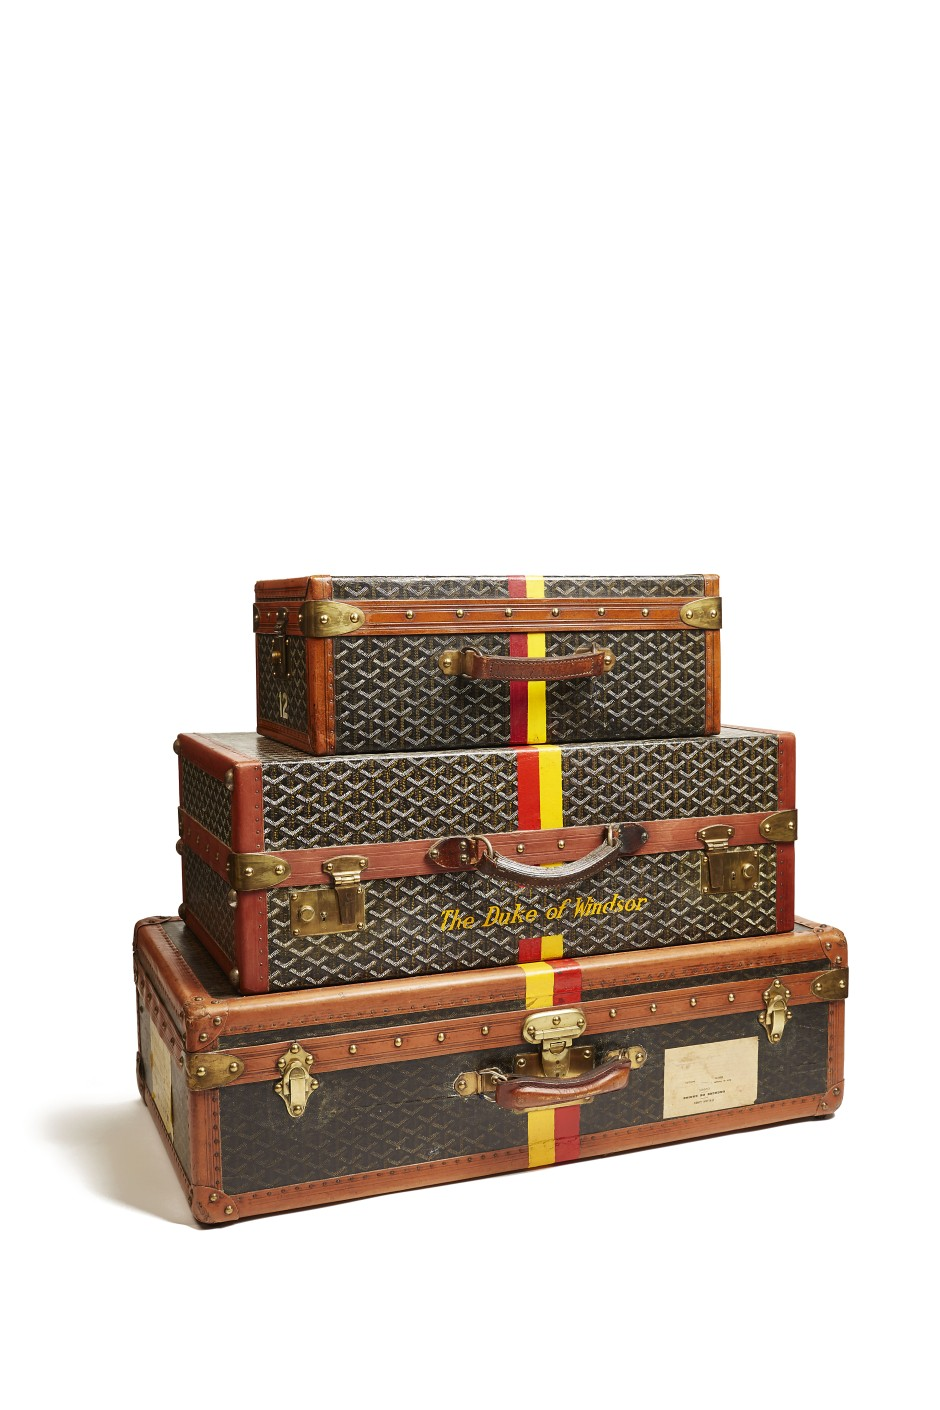 Duke_and_Duchess_of_Windsors_Luggage_Goyard_about_1950__Miottel_Museum_Berkeley_California._Photograph_courtesy_of_Peabody_Essex_Museum_Salem_Massachusetts